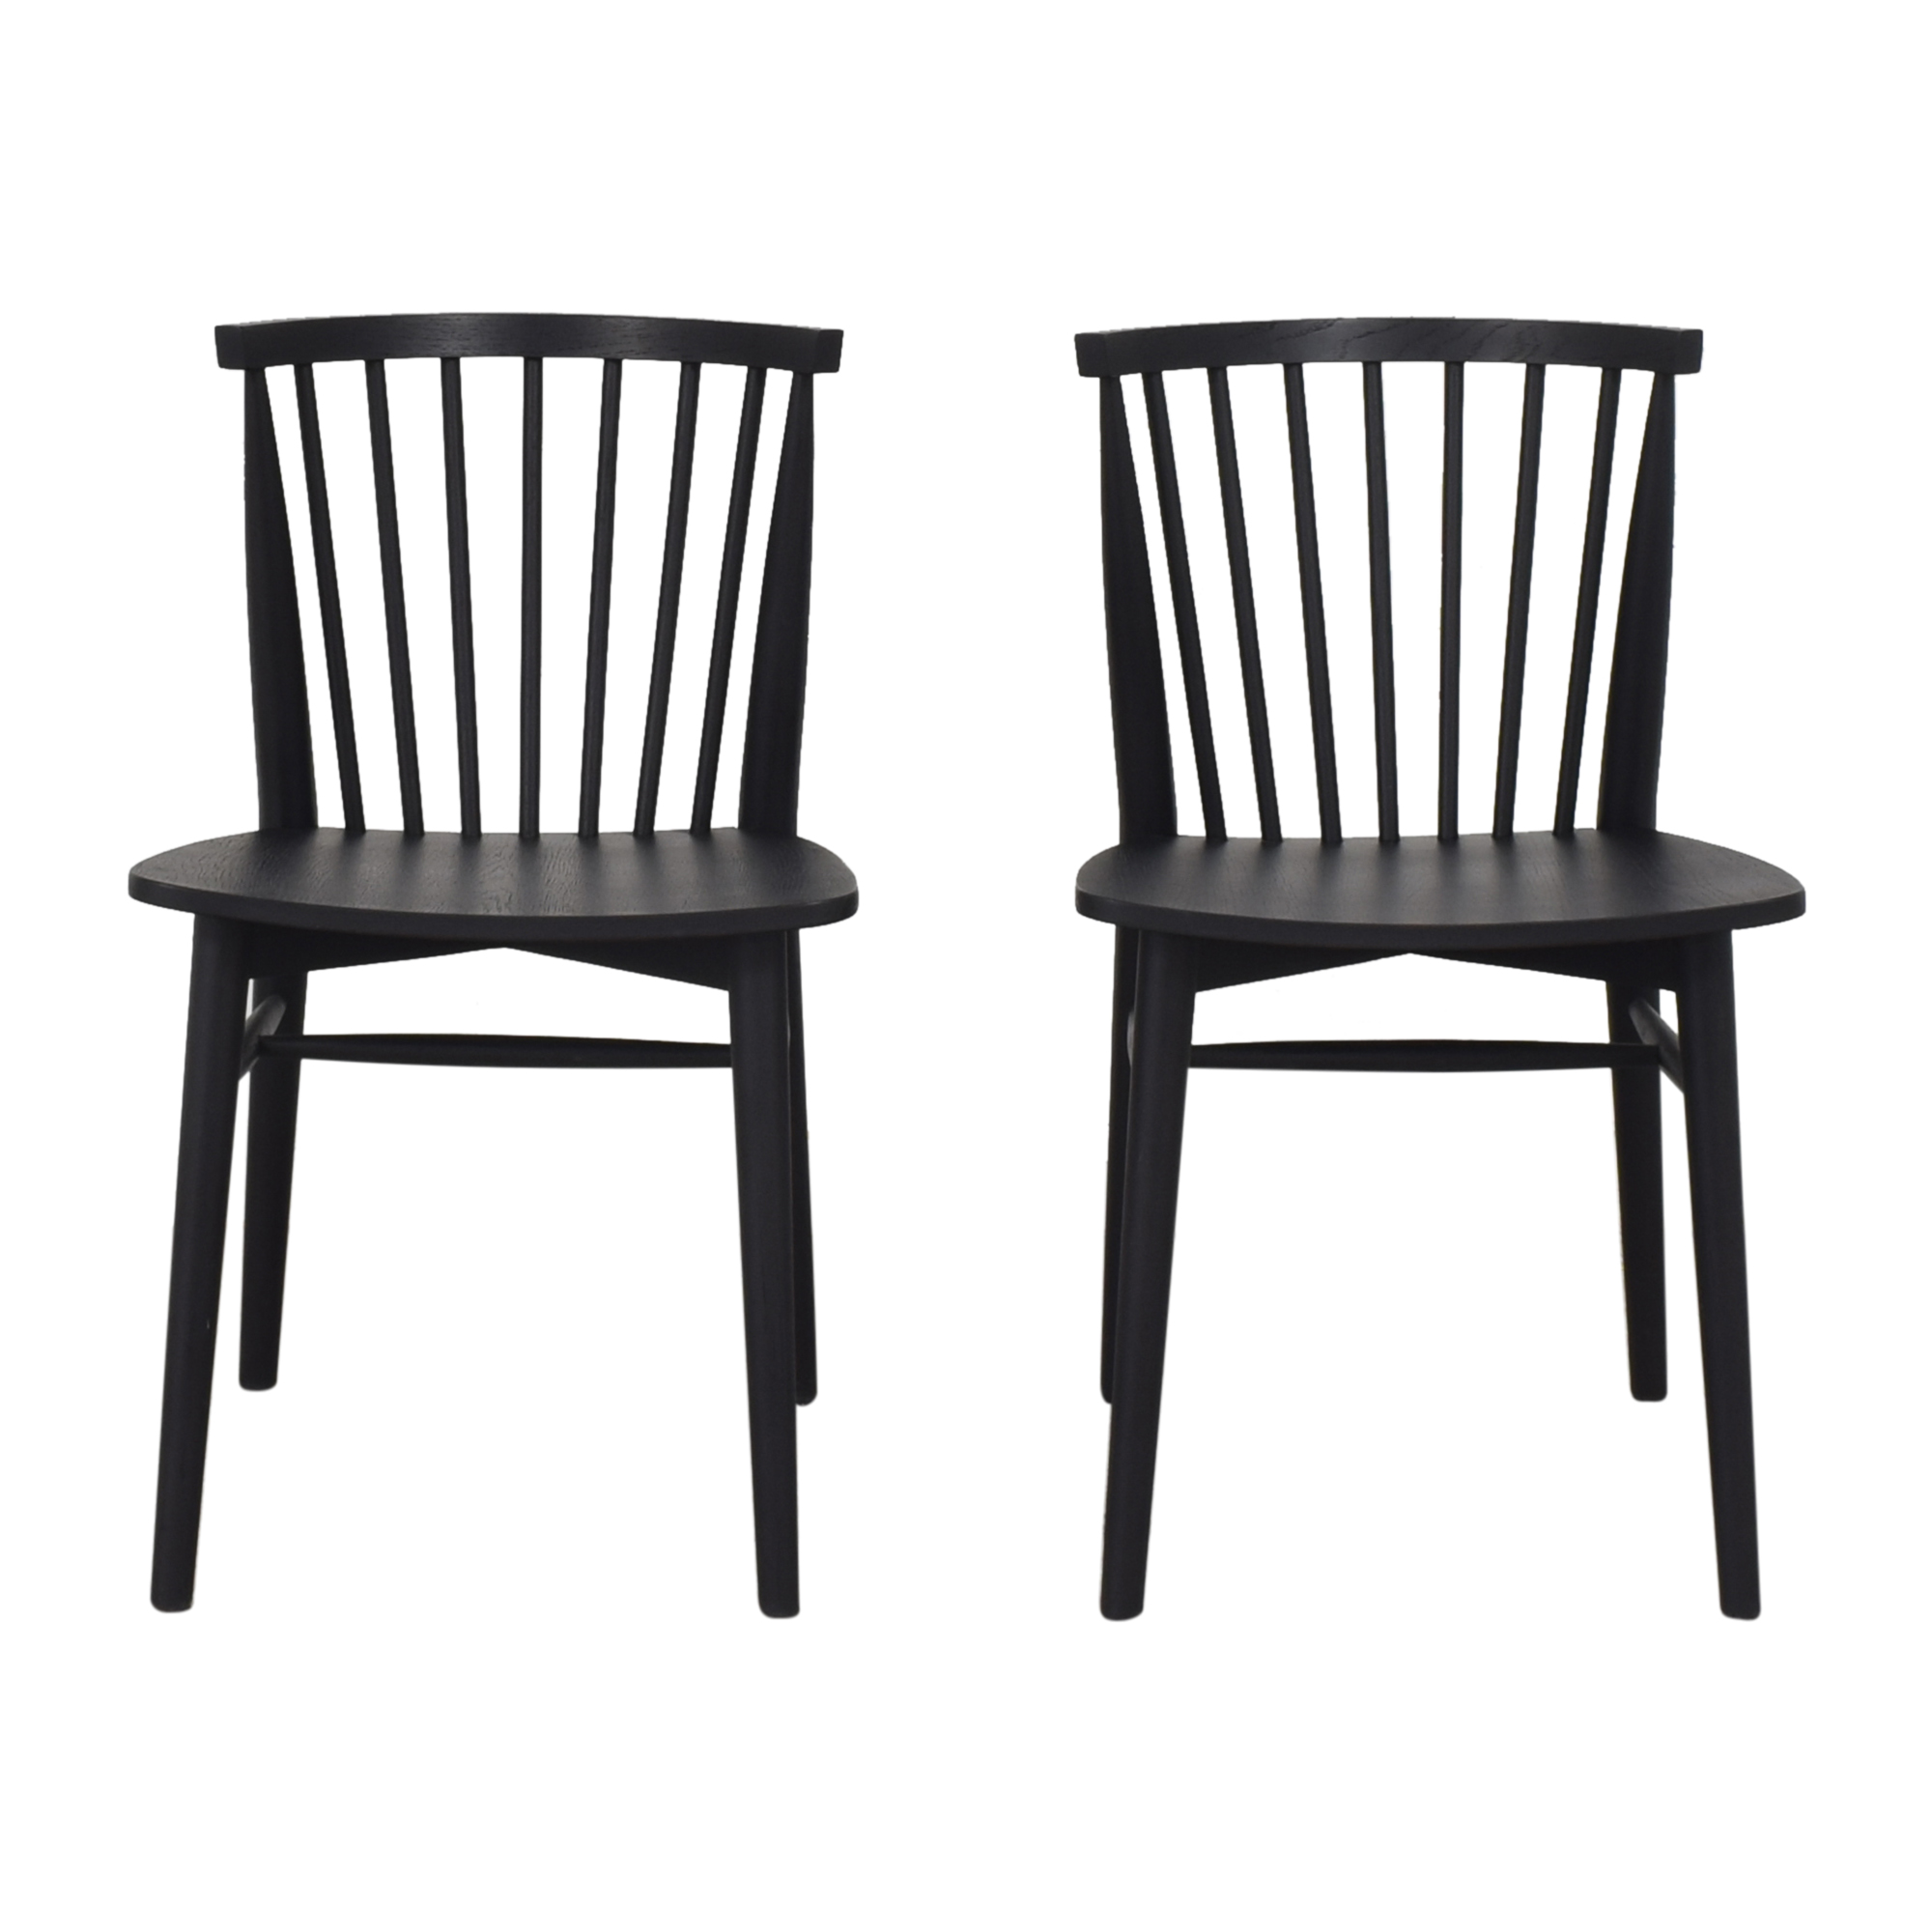 Article Article Rus Dining Chairs Chairs